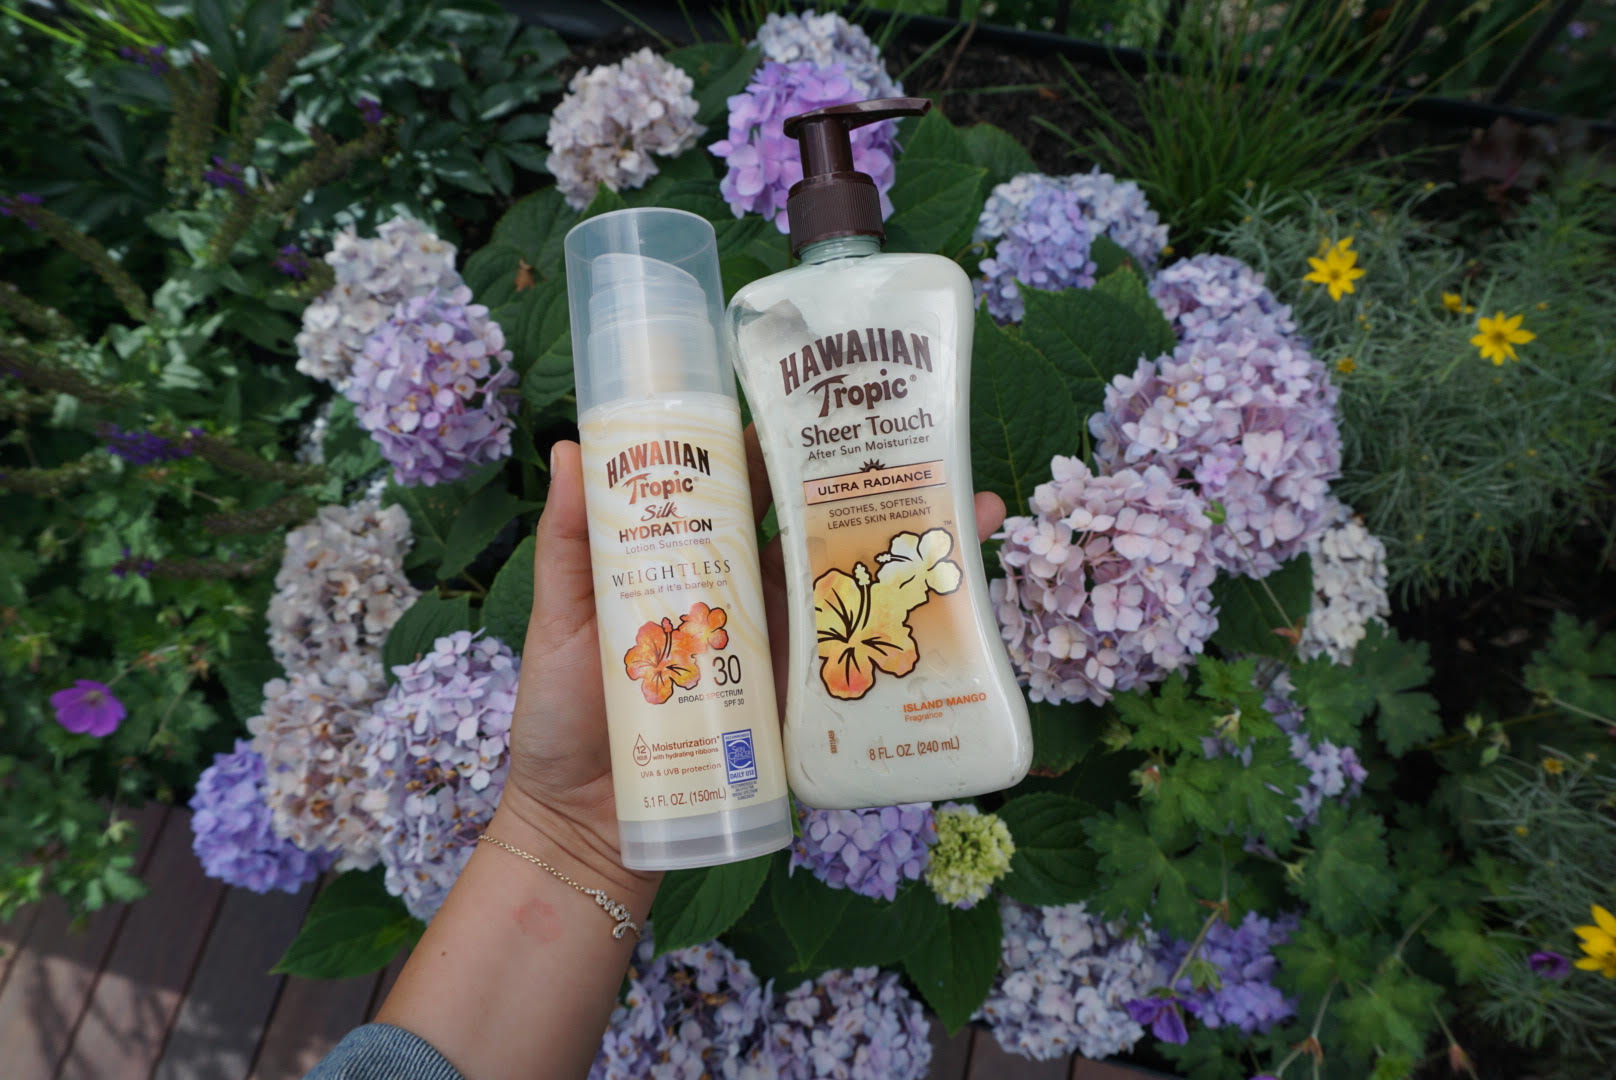 Summer Must Have Products from Hawaiian Tropic